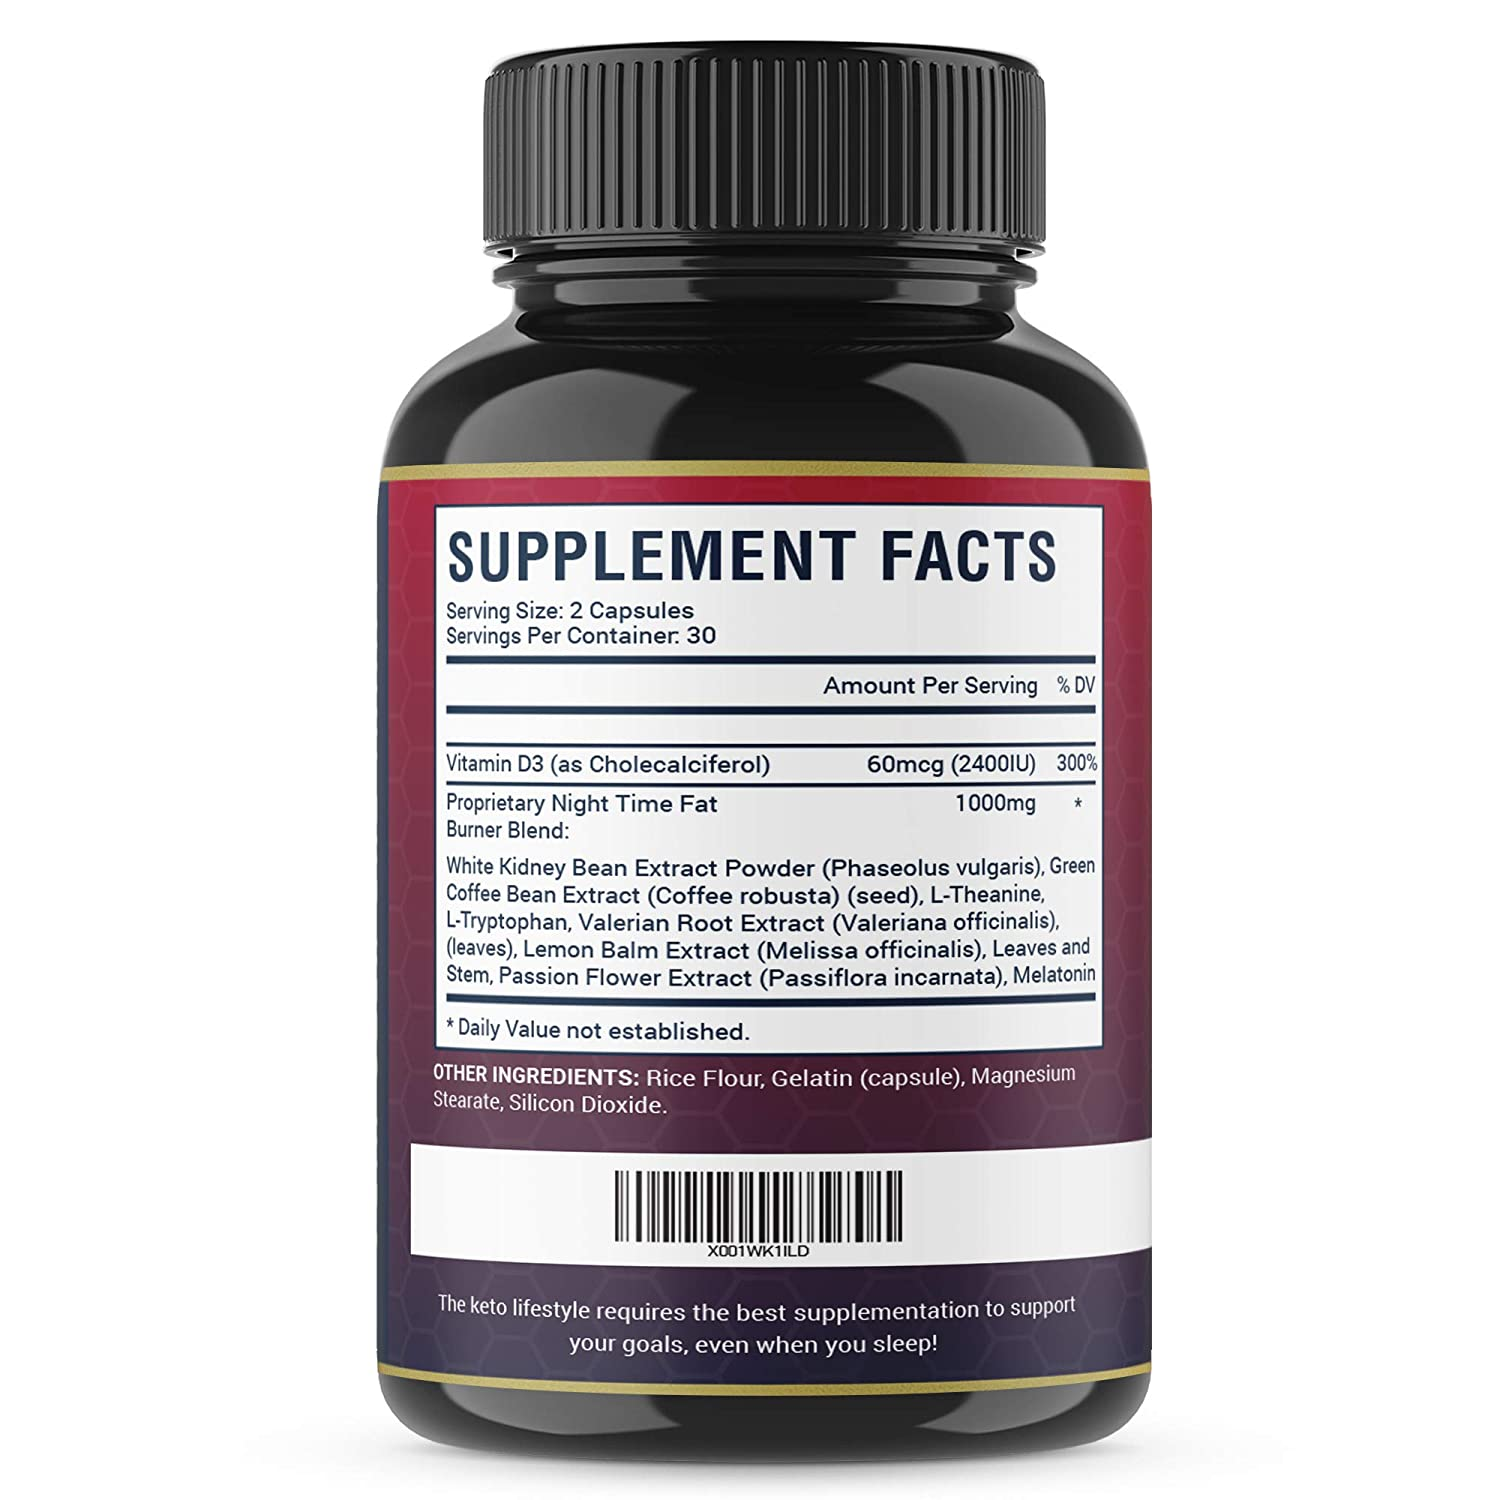 ... Appetite Suppressant for Men and Women - Sleep Aid - White Kidney Bean Extract, Green Coffee Bean Extract, L-Theanine, L-Tryptophan, Melatonin: Health ...